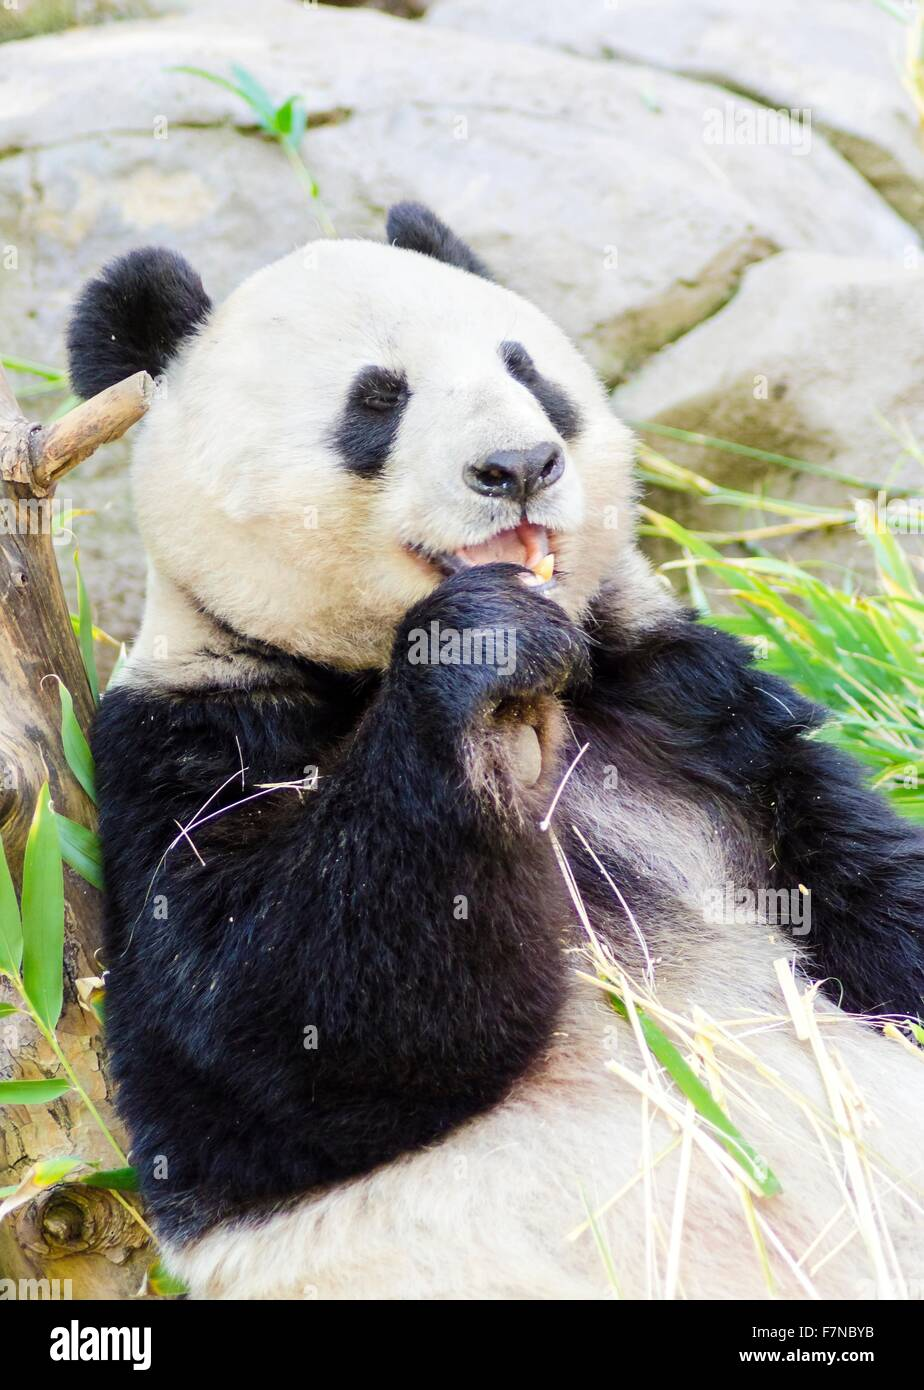 A cute adorable lazy adult giant Panda bear eating bamboo. The Ailuropoda melanoleuca is distinct by the large black - Stock Image